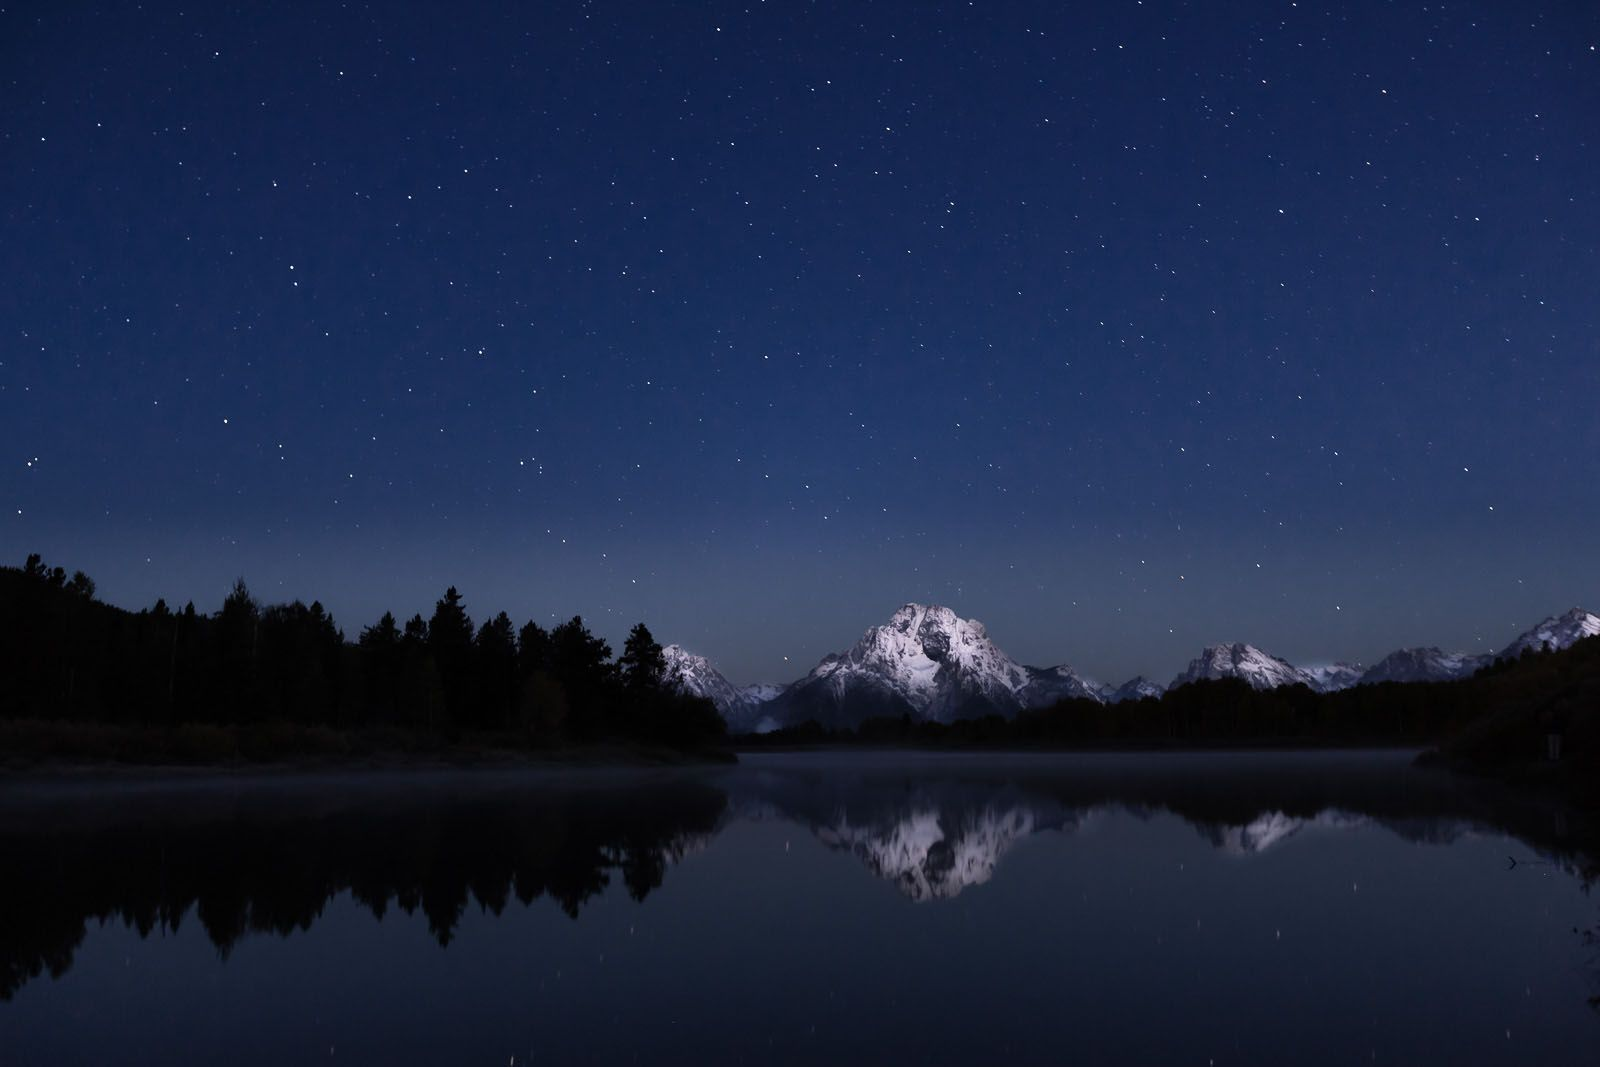 6 Gorgeous Reasons To Try Night Photography Night Photography Landscape Photography Photography